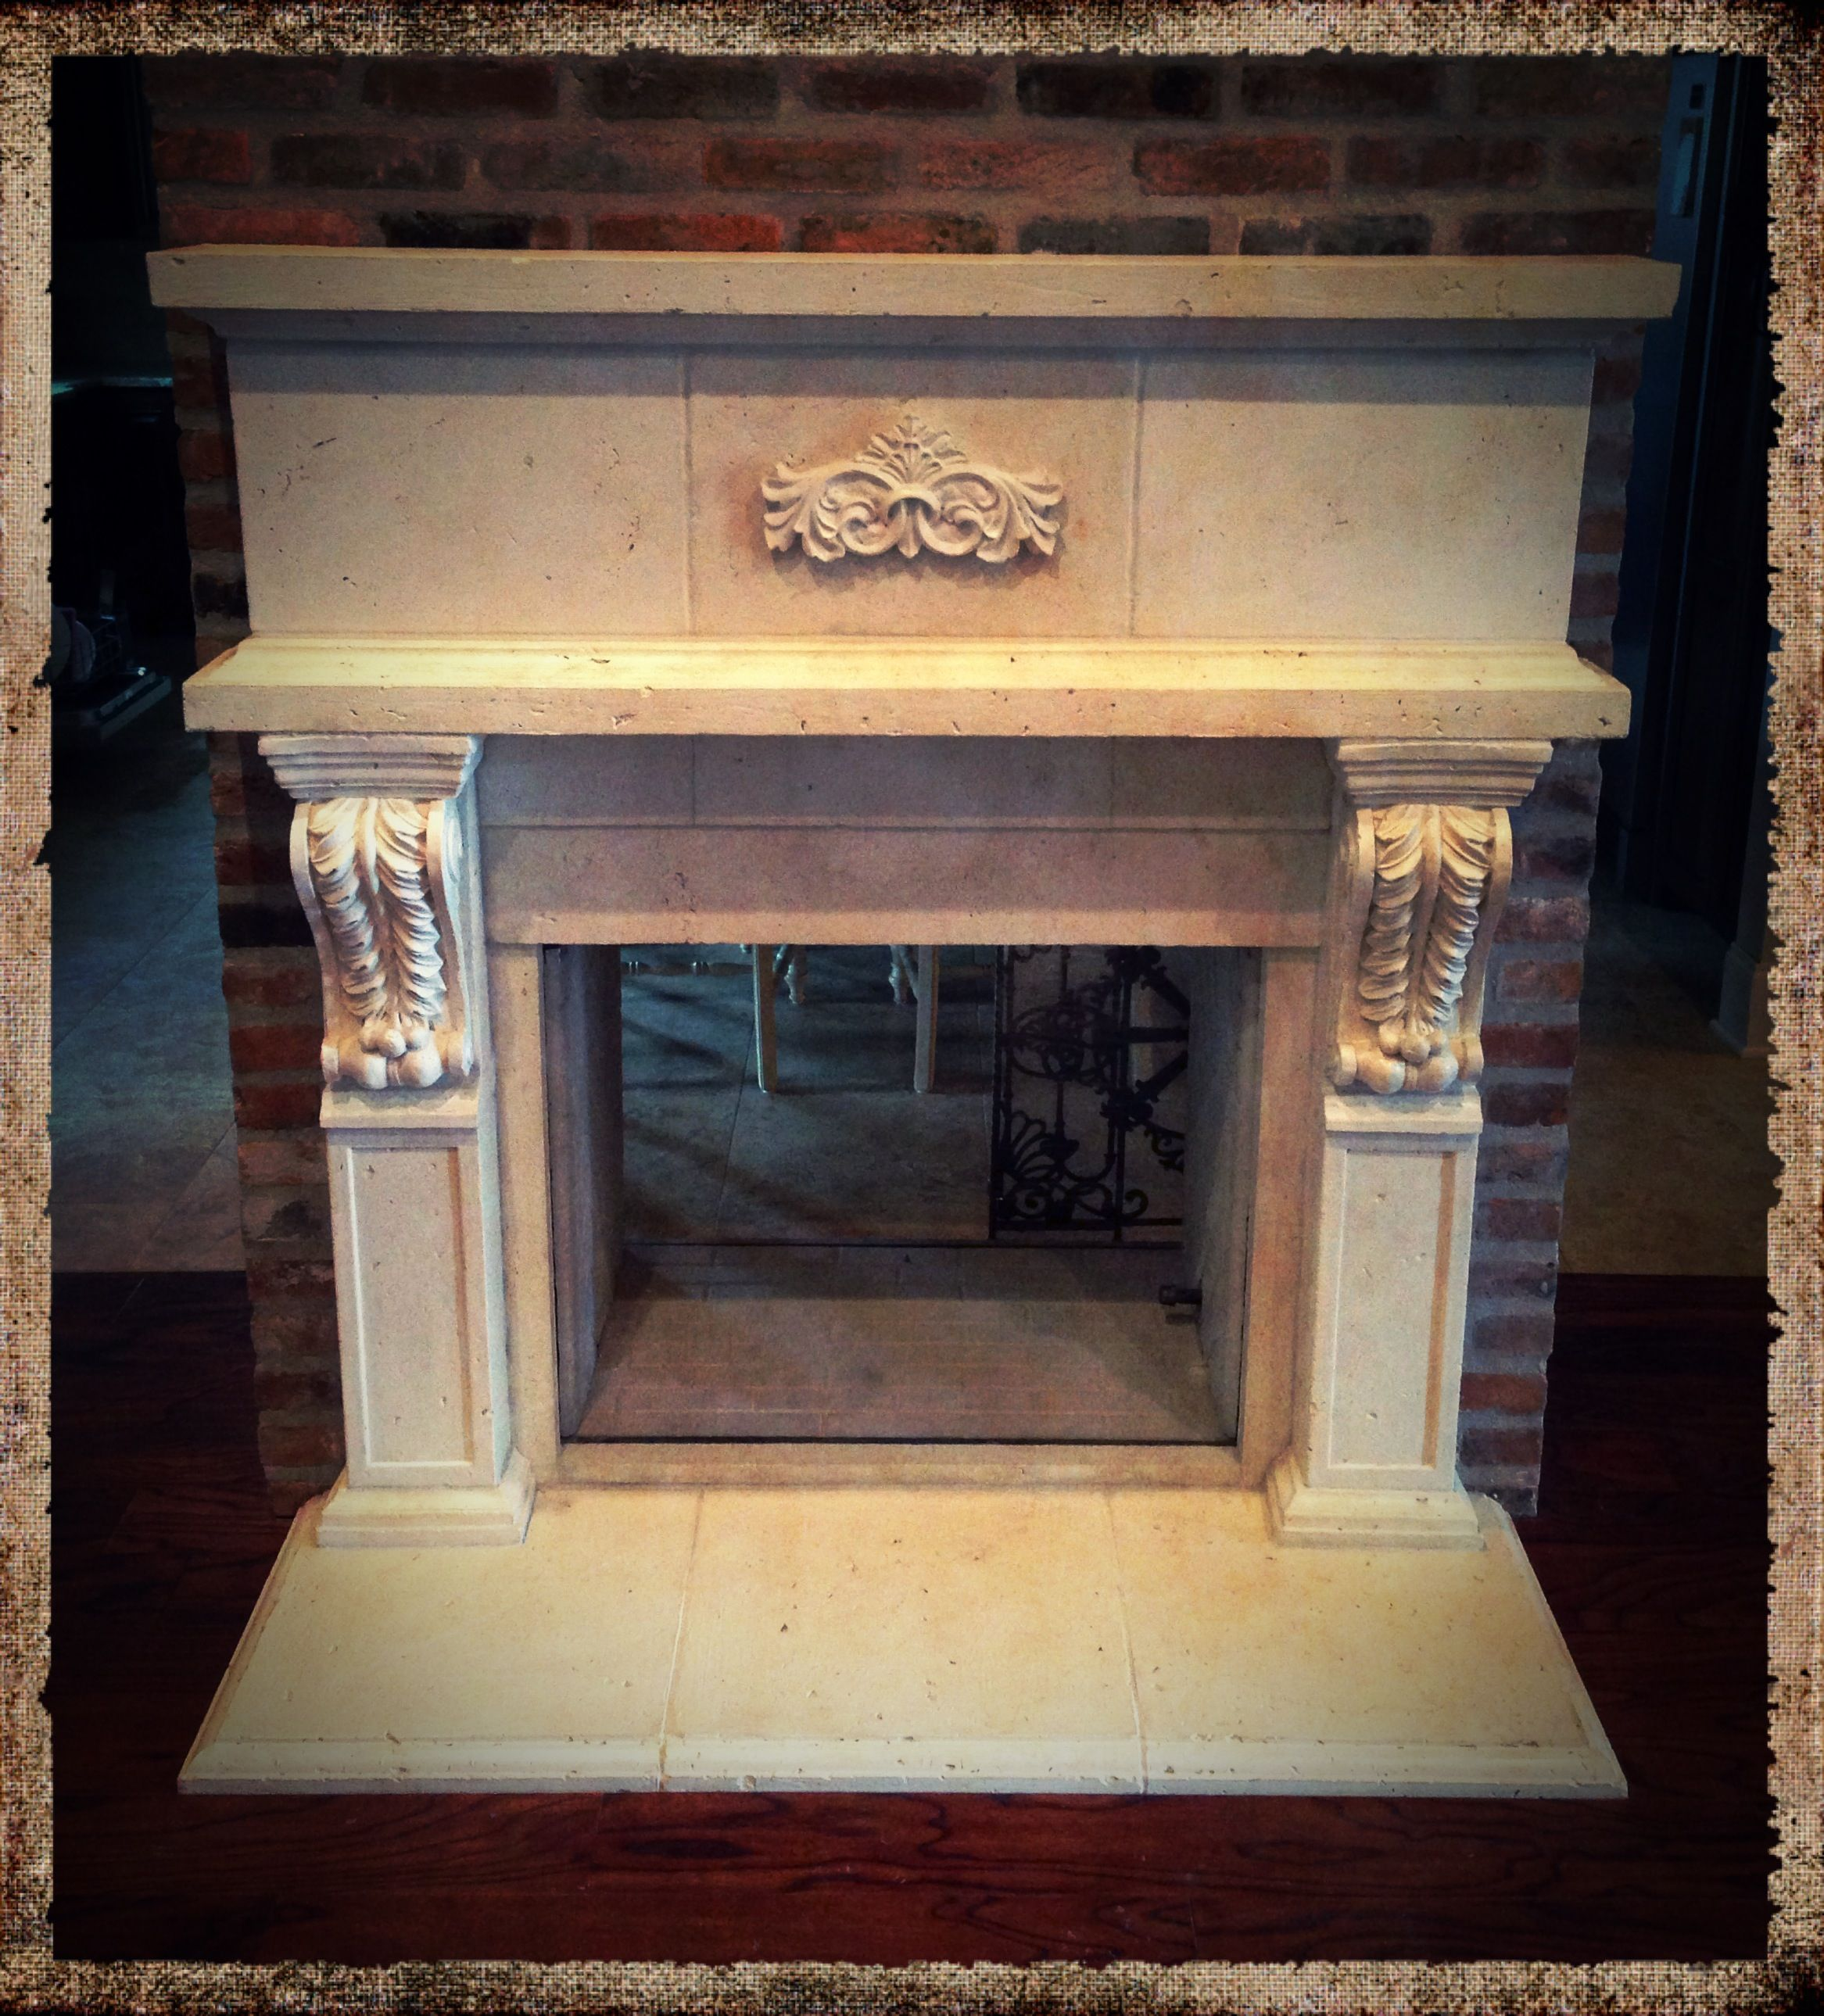 bawden fine fireplace and like marble to murals hearth white look stone mantel faux painted mantels cast fireplaces